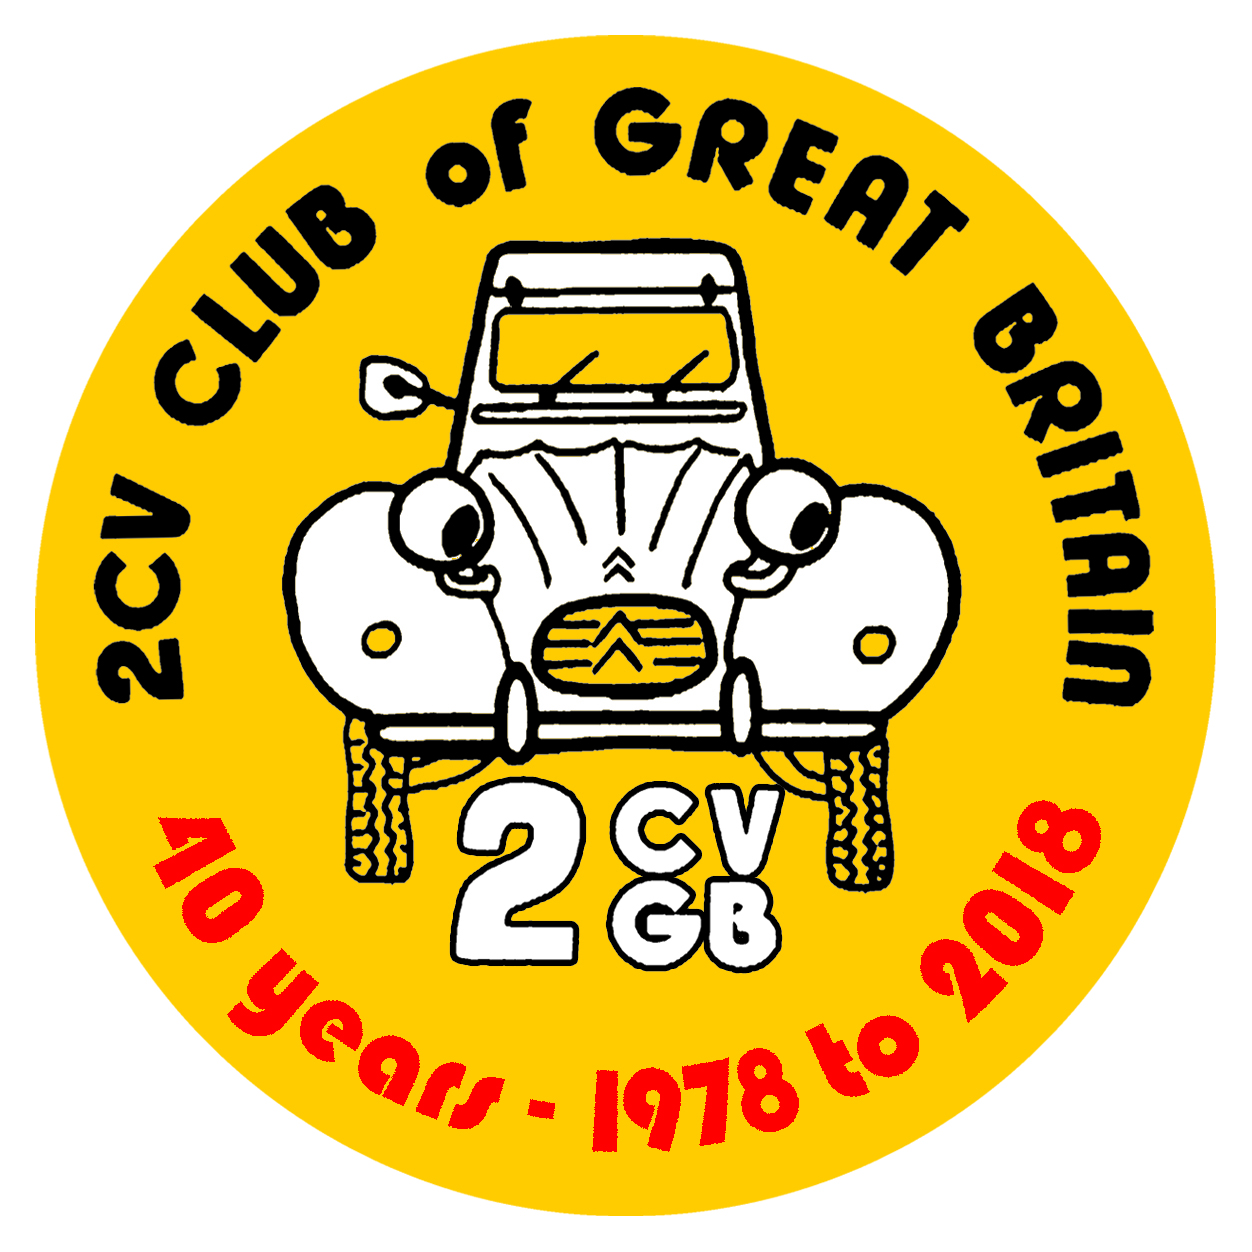 2CVGB sticker 40 years black+white+red on yellow